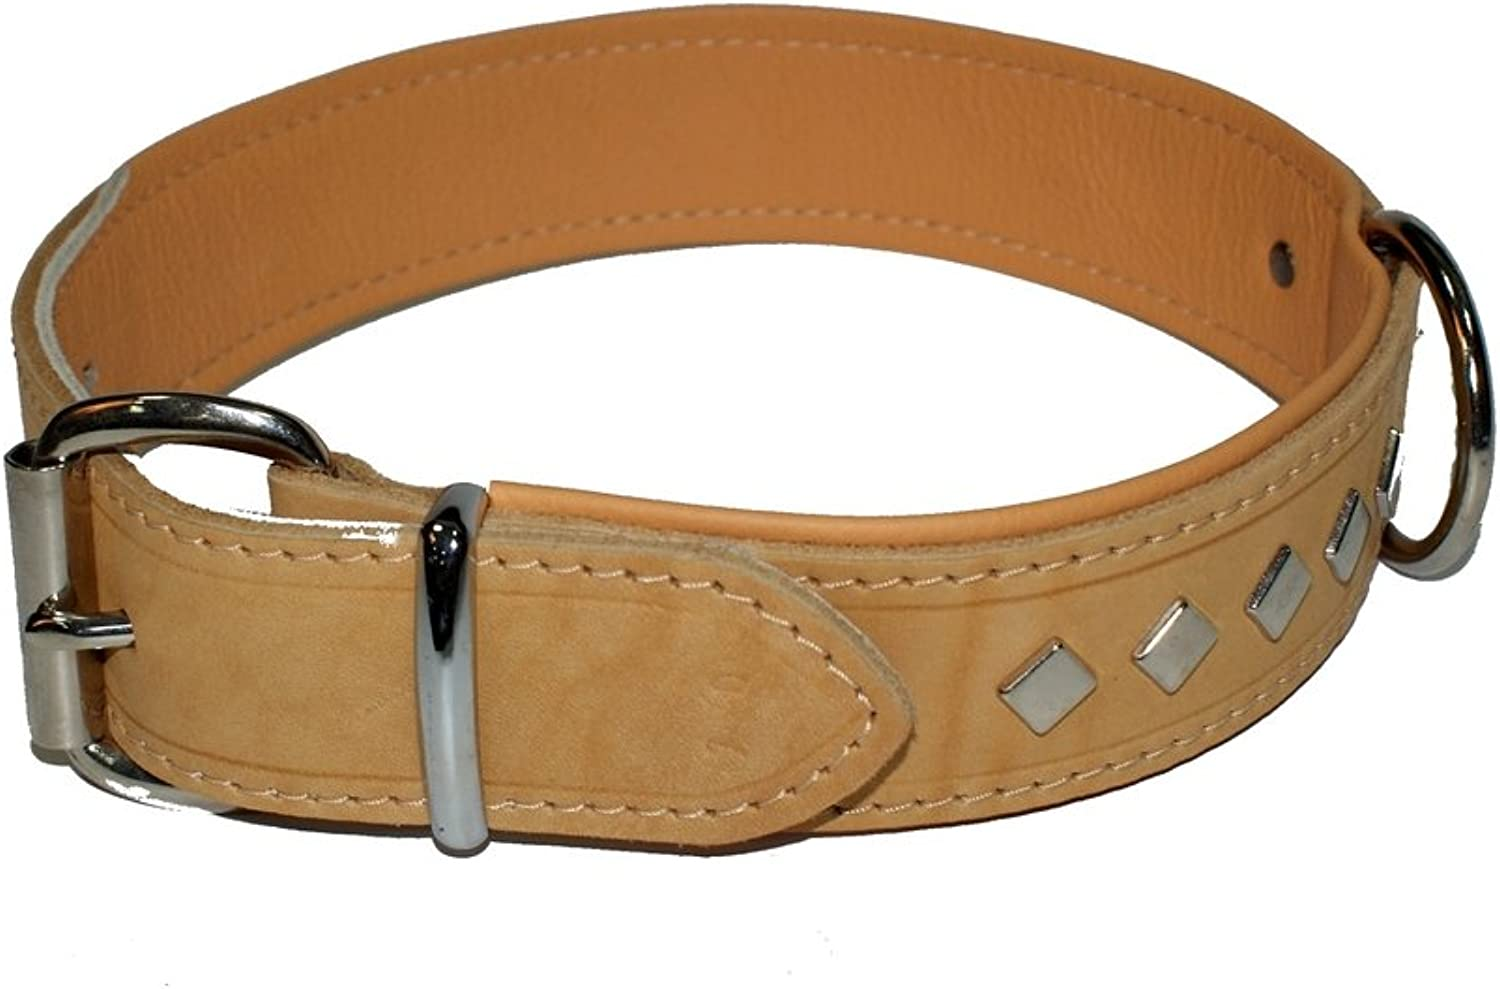 Dingo Dog Collar Made of Exclusive Soft Leather, Decorative and Durable Natural 11475